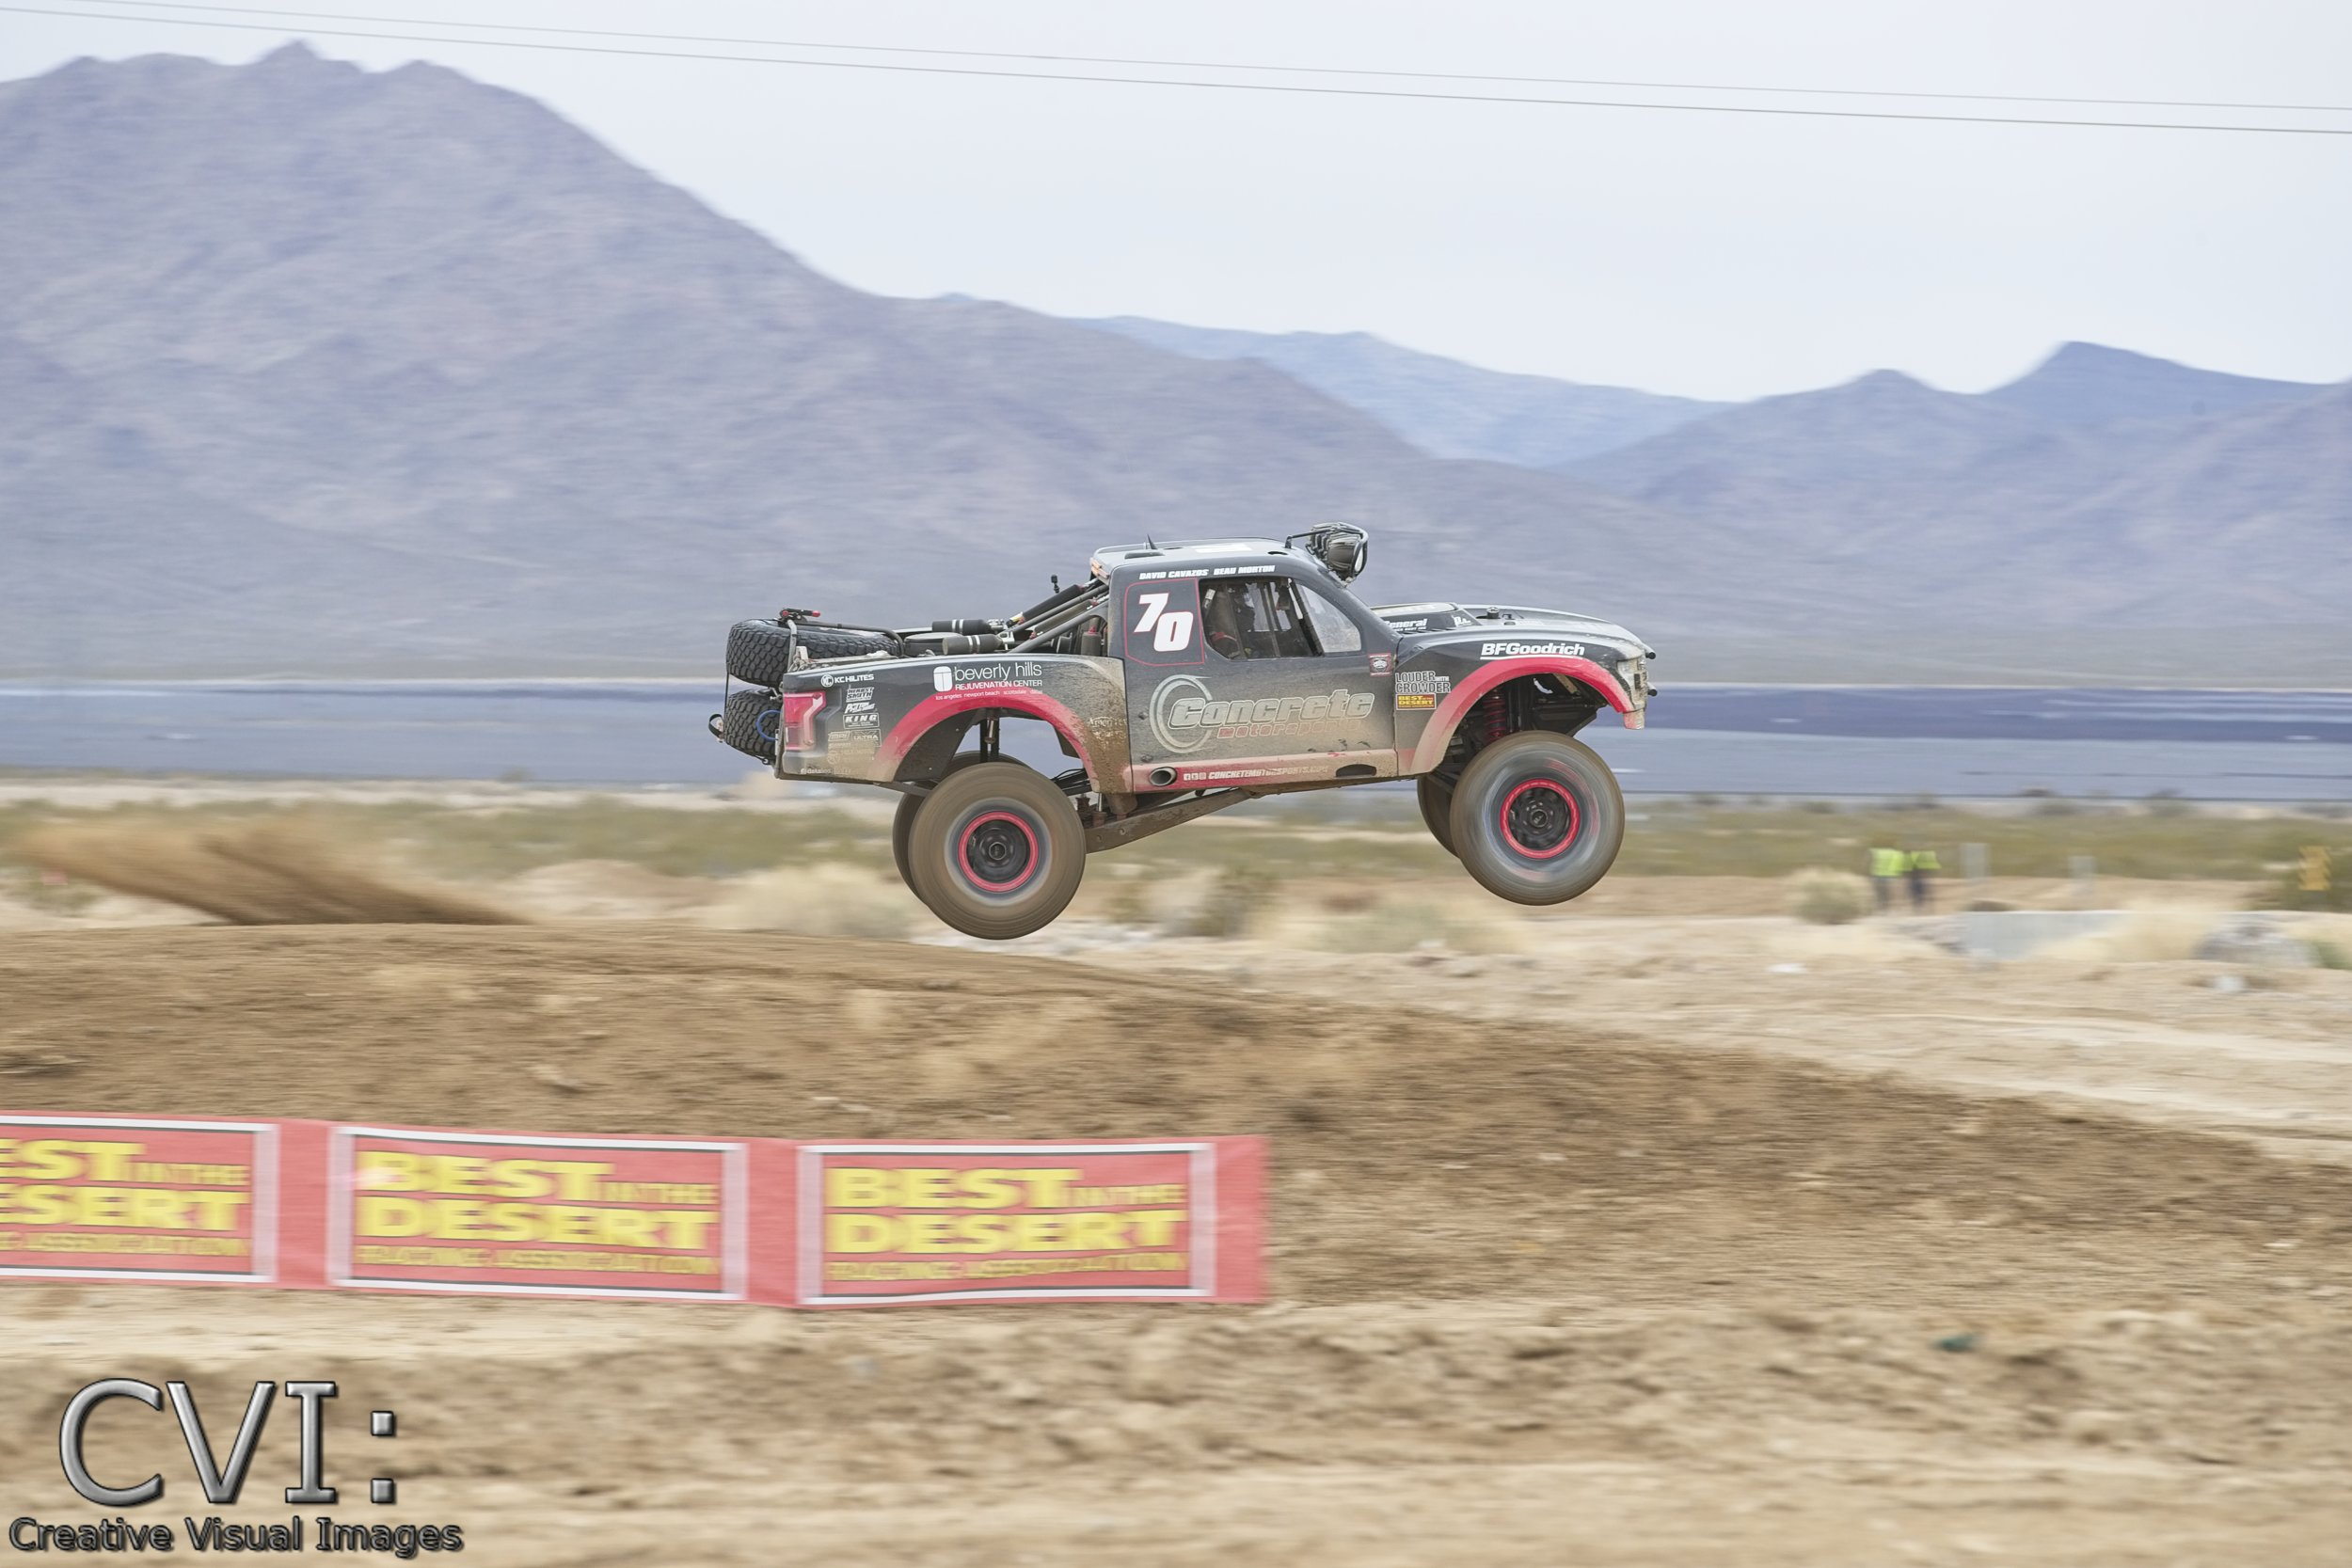 Mint40020190310201226AW6I2325 Unedited Preview.jpg